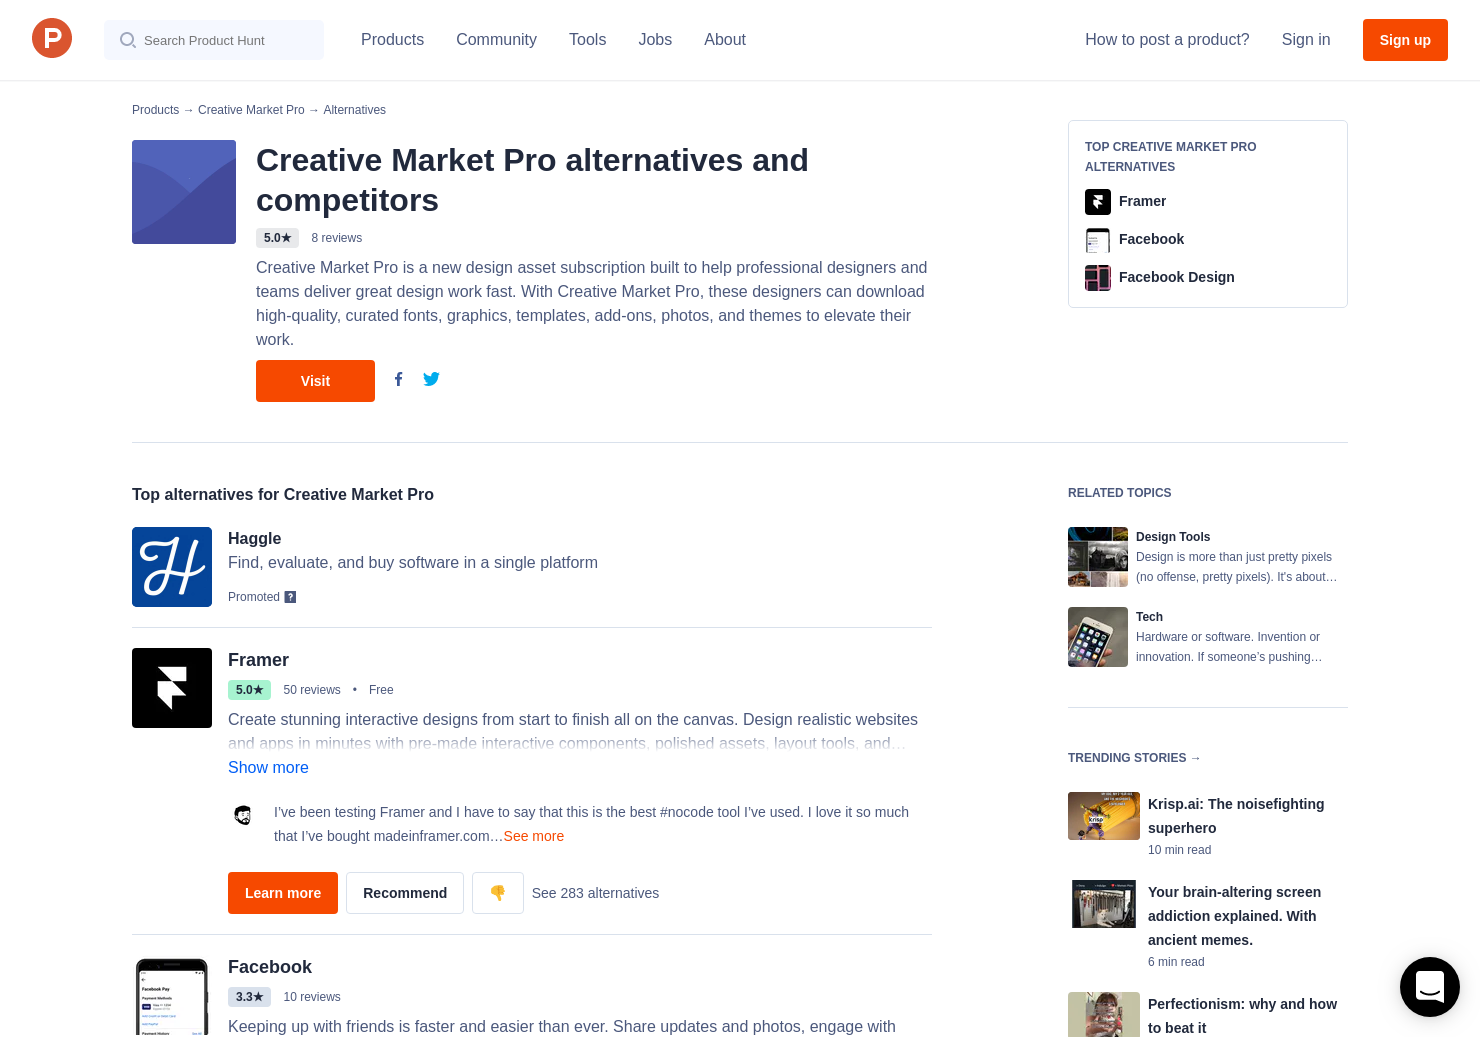 18 Alternatives to Creative Market Pro | Product Hunt